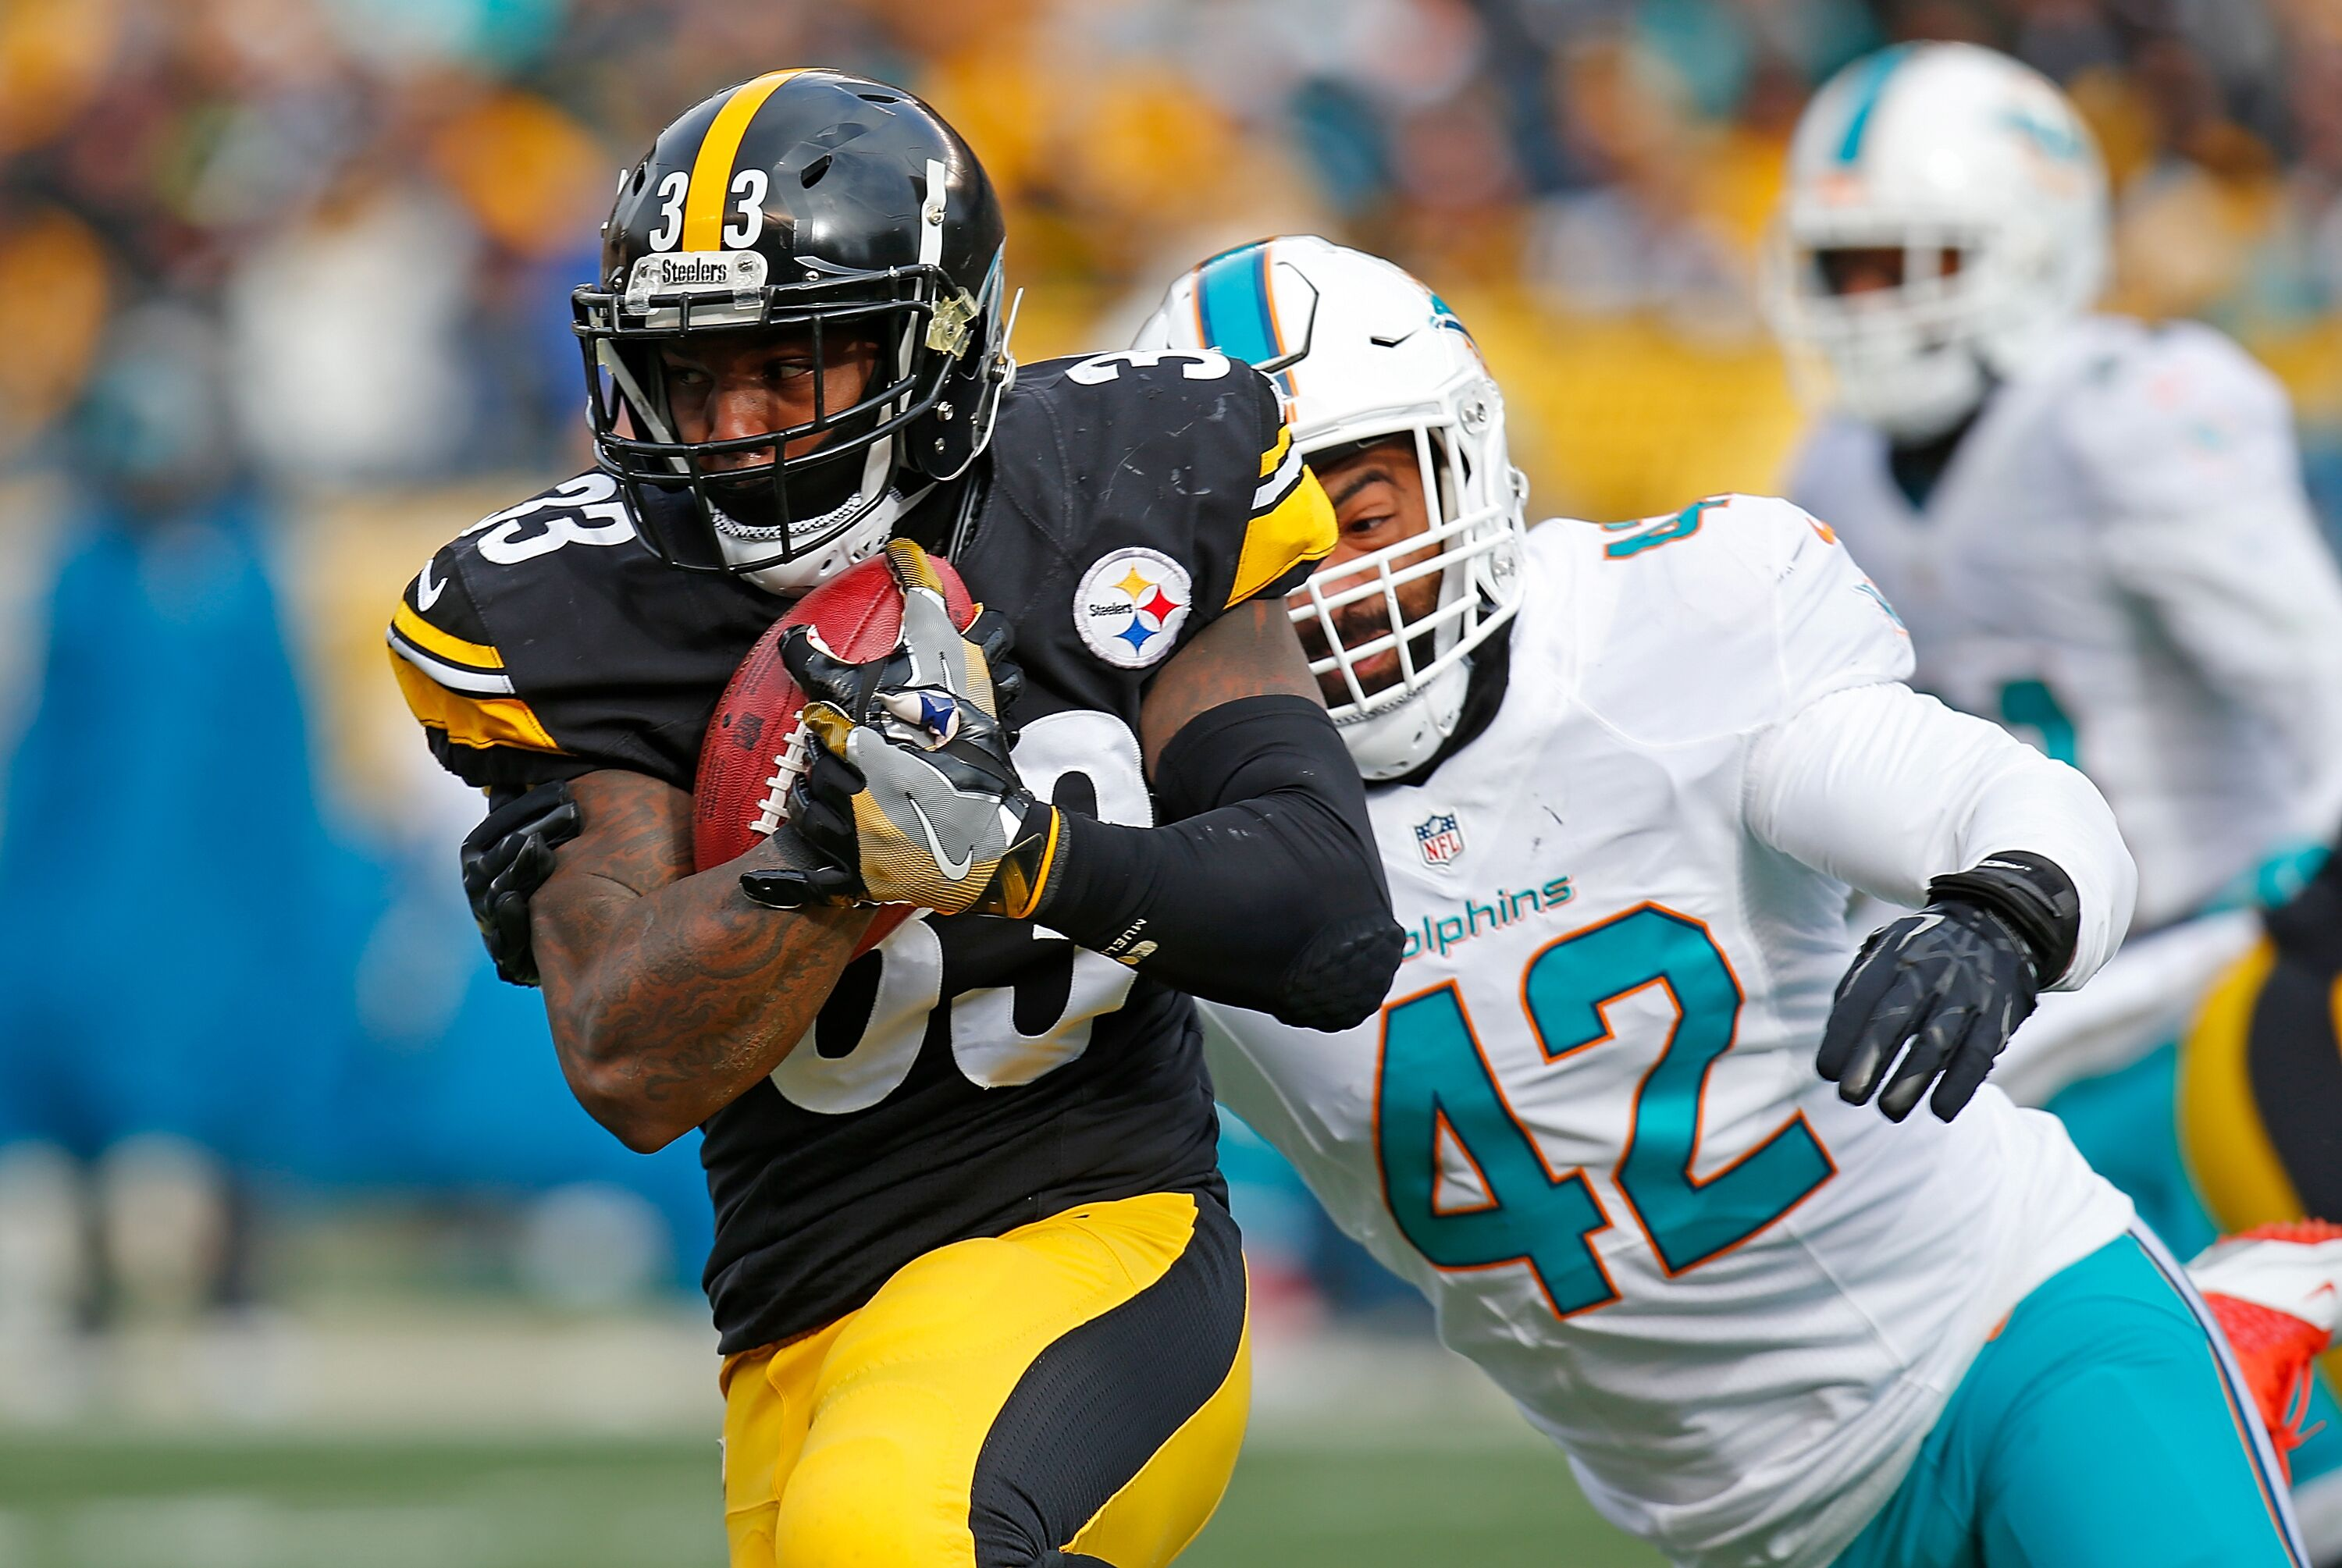 631227812-wild-card-round-miami-dolphins-v-pittsburgh-steelers.jpg